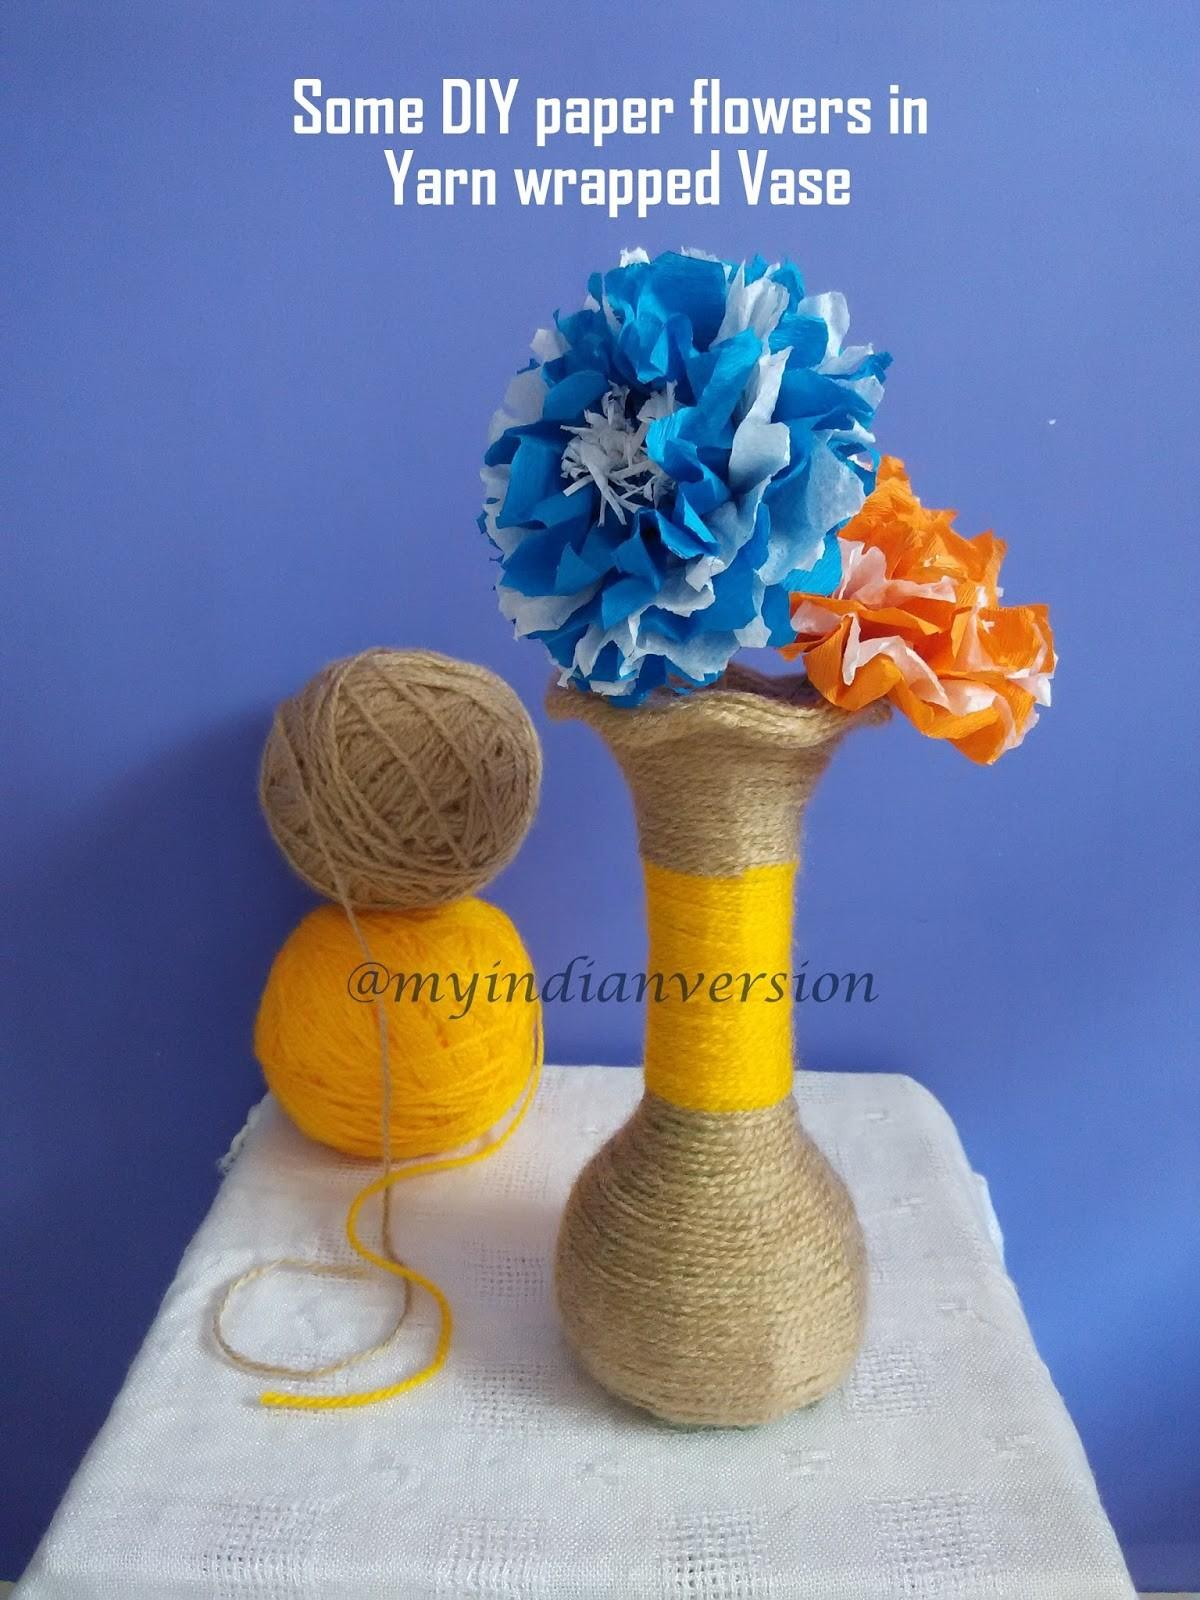 Indian Version Diy Yarn Wrapped Vase Tutorial